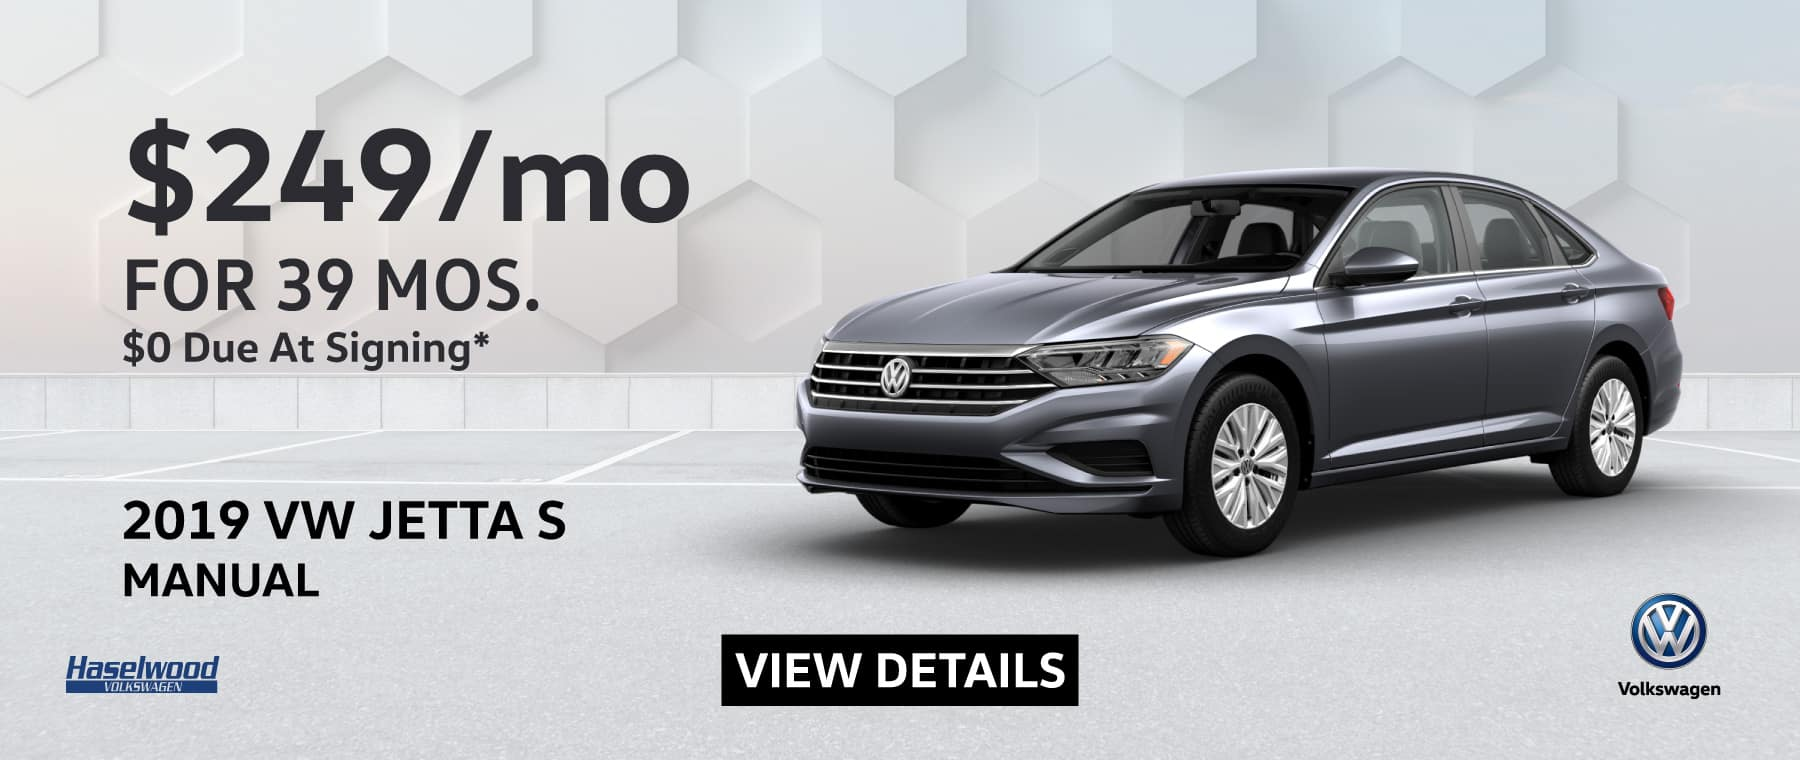 2019 VW Jetta S Manual $249/mo for 39 months